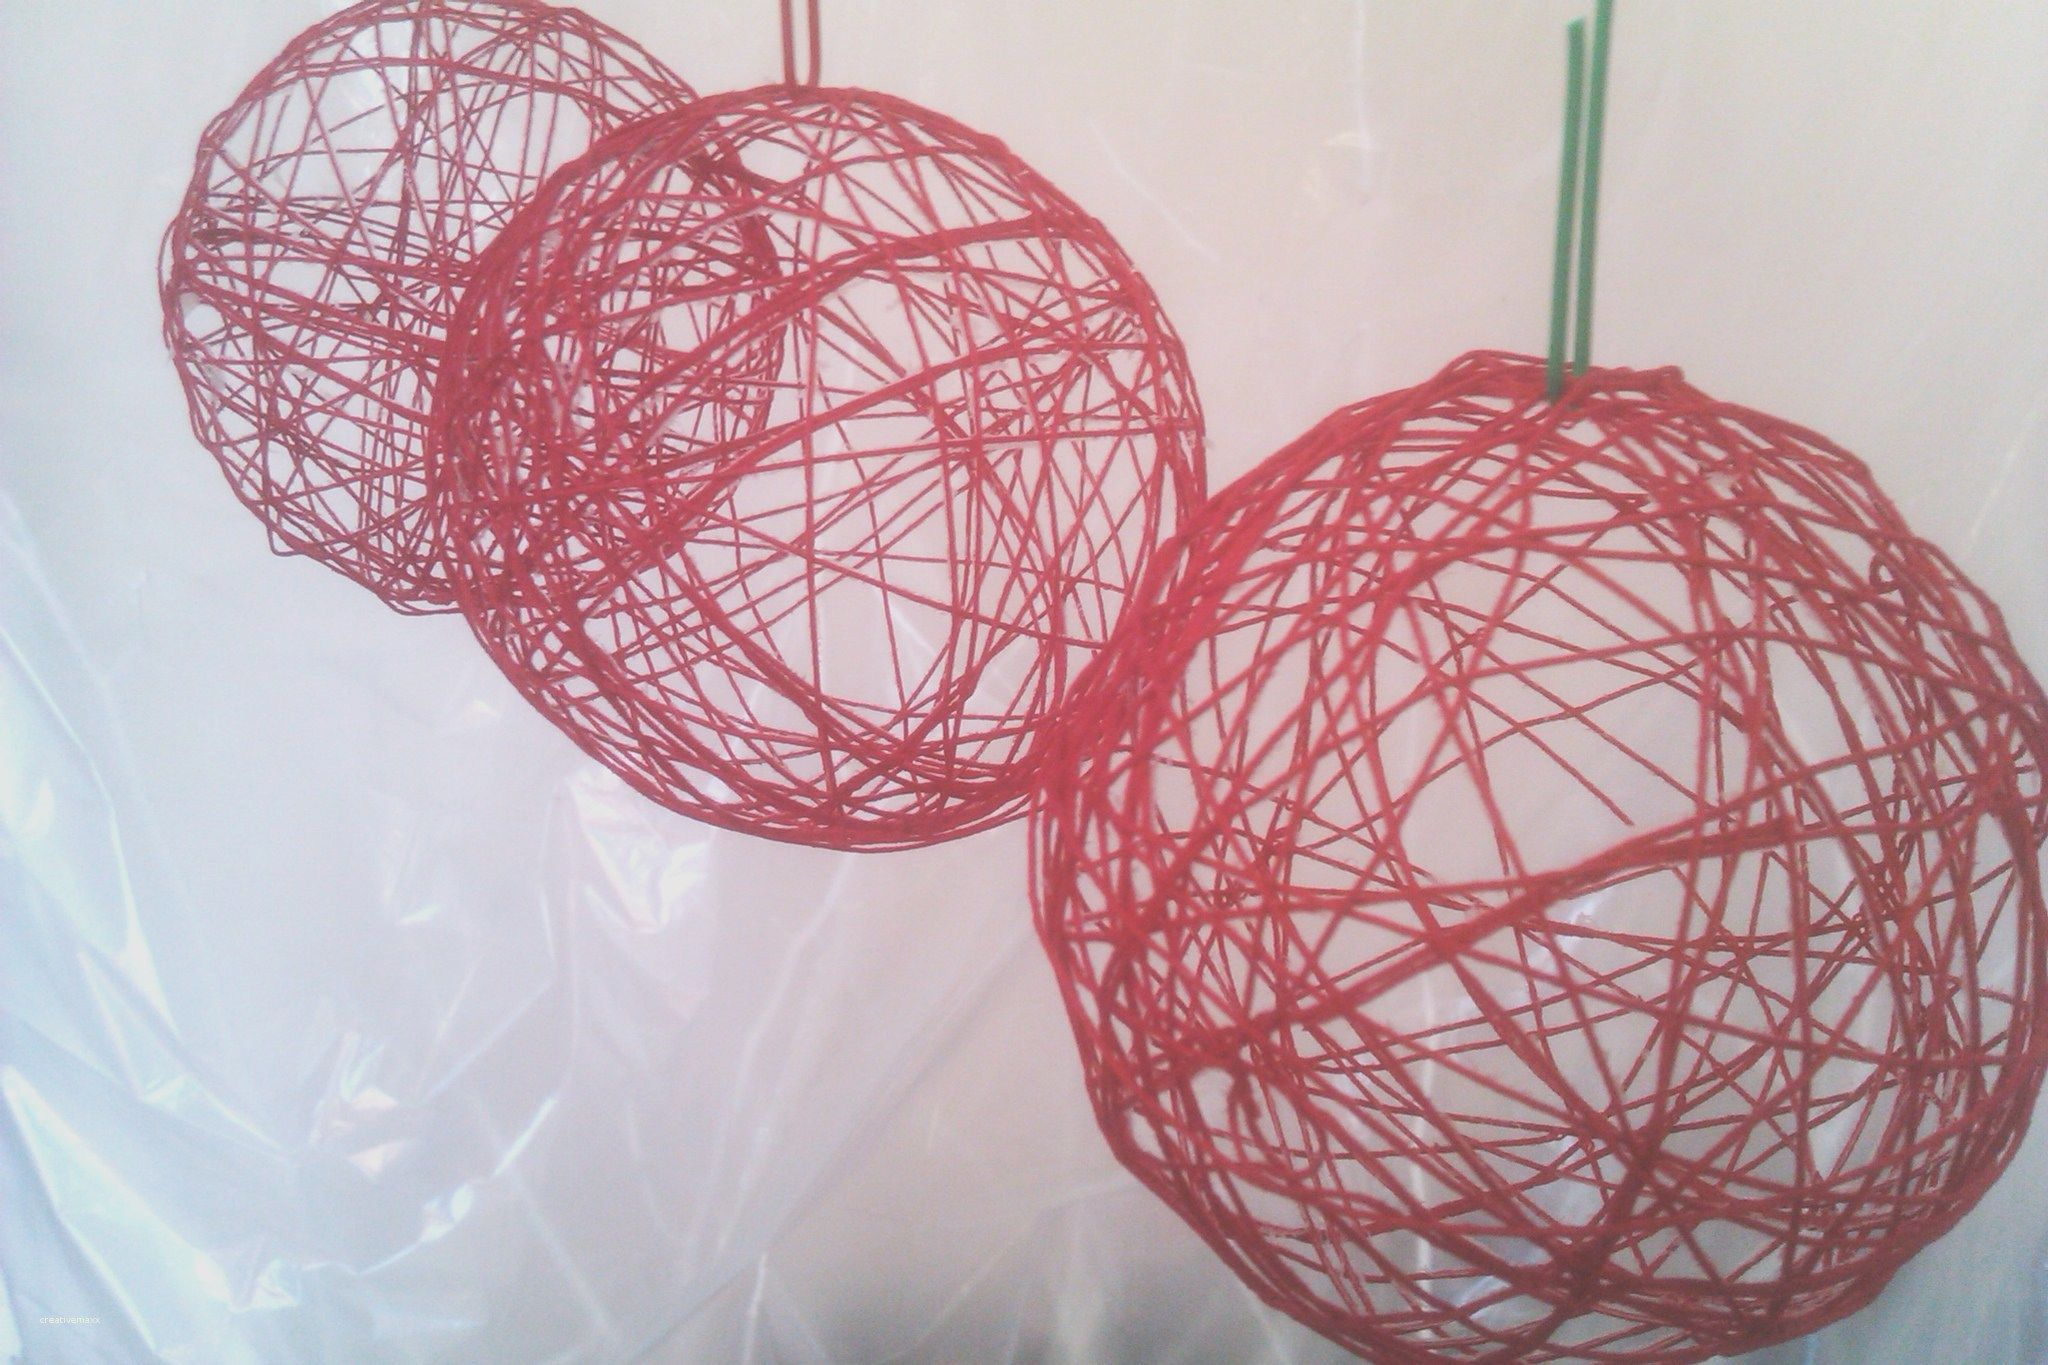 Red Decorative Balls 16 Elegant Decorative Ball Designs That Will Inspire You  Jute